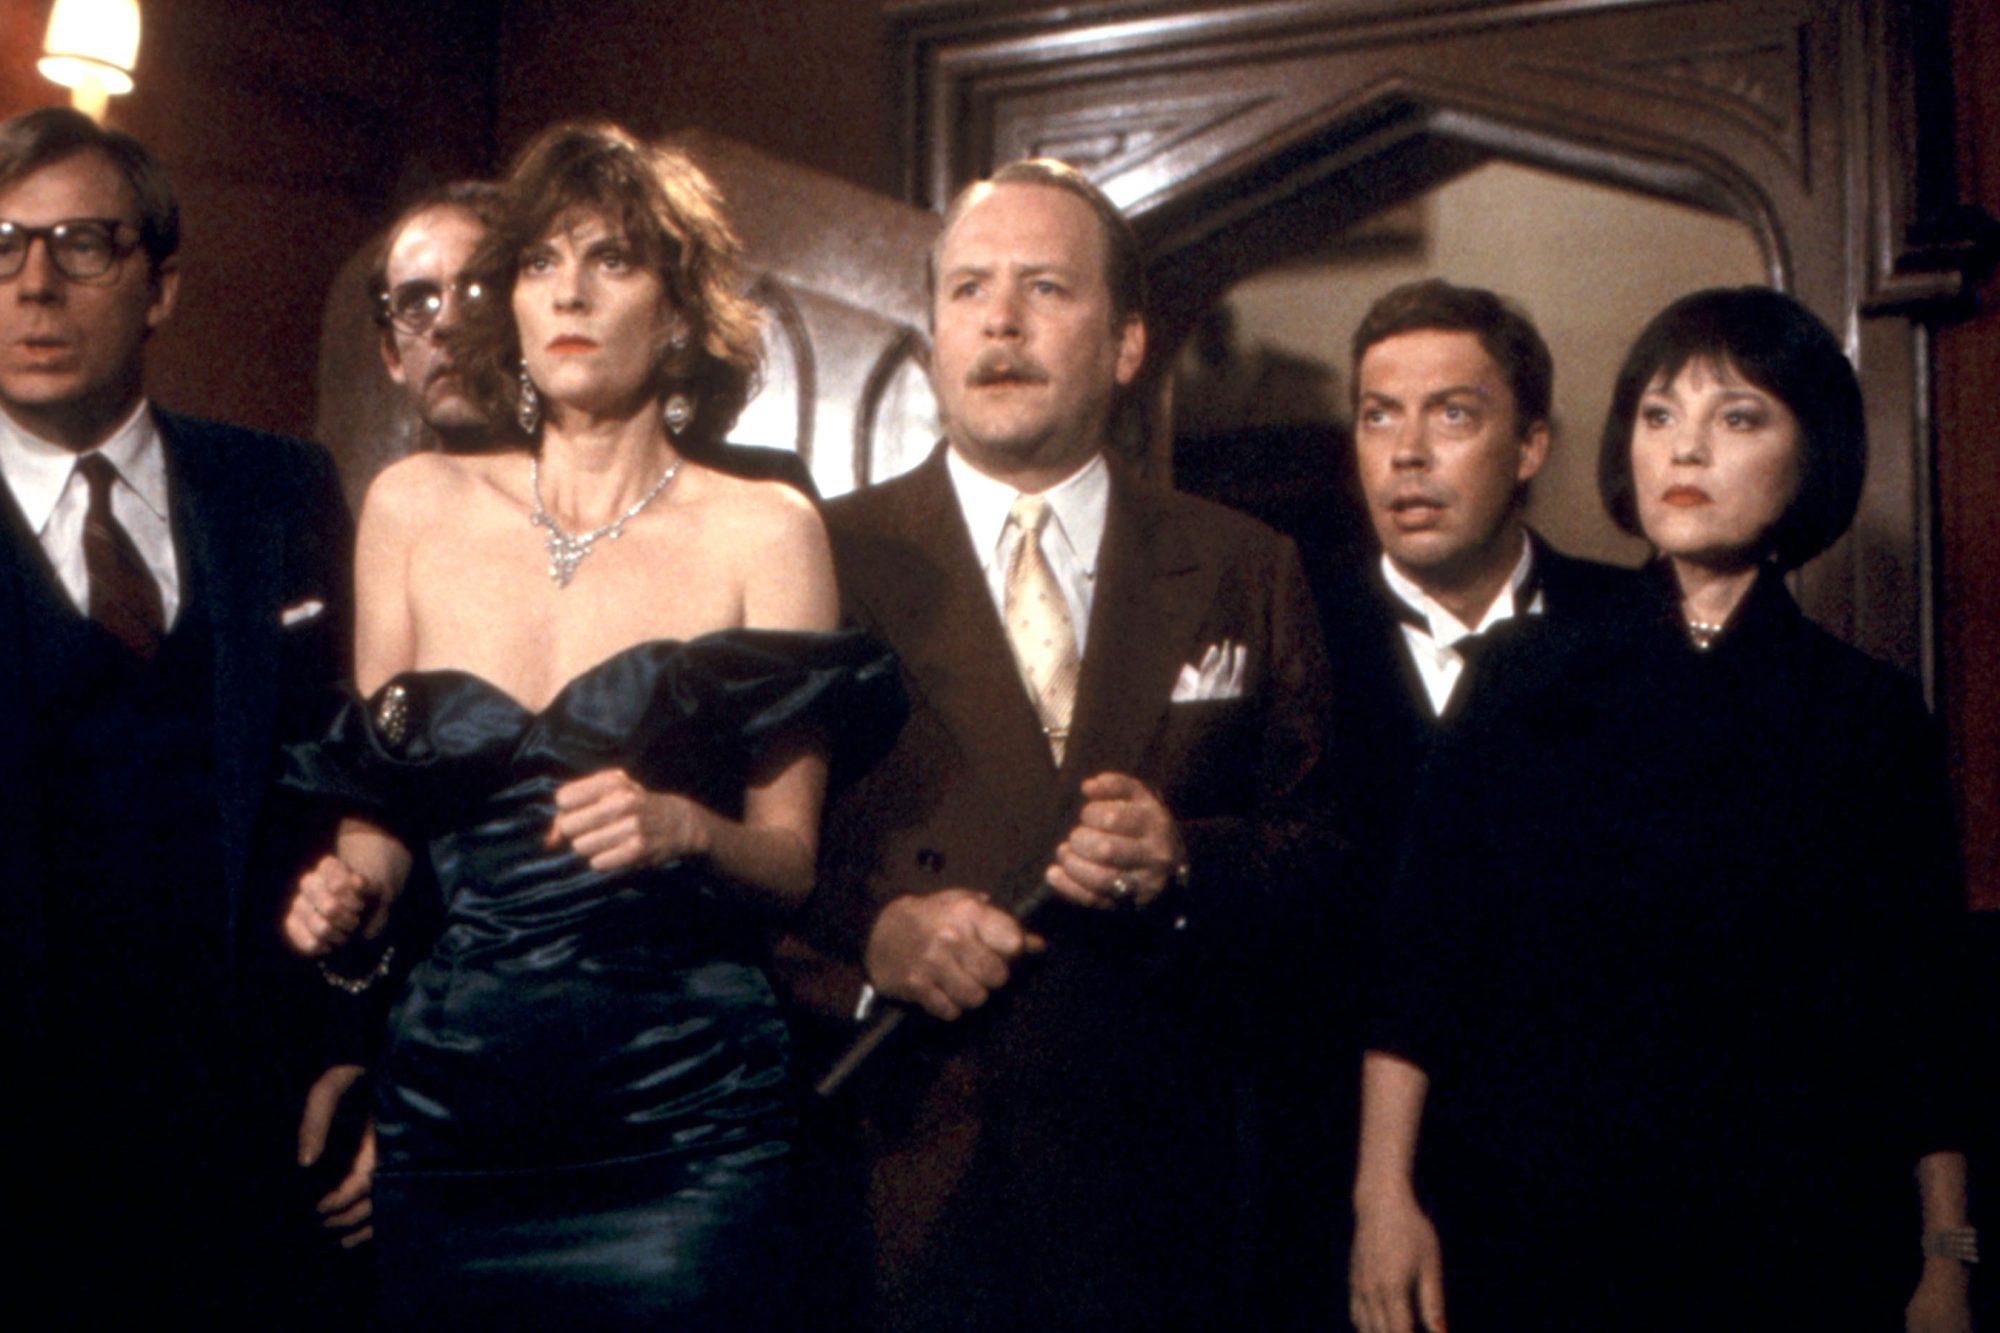 CLUE, Michael McKean, Christopher Lloyd, Lesley Ann Warren, Martin Mull, Tim Curry, Madeline Kahn, 1